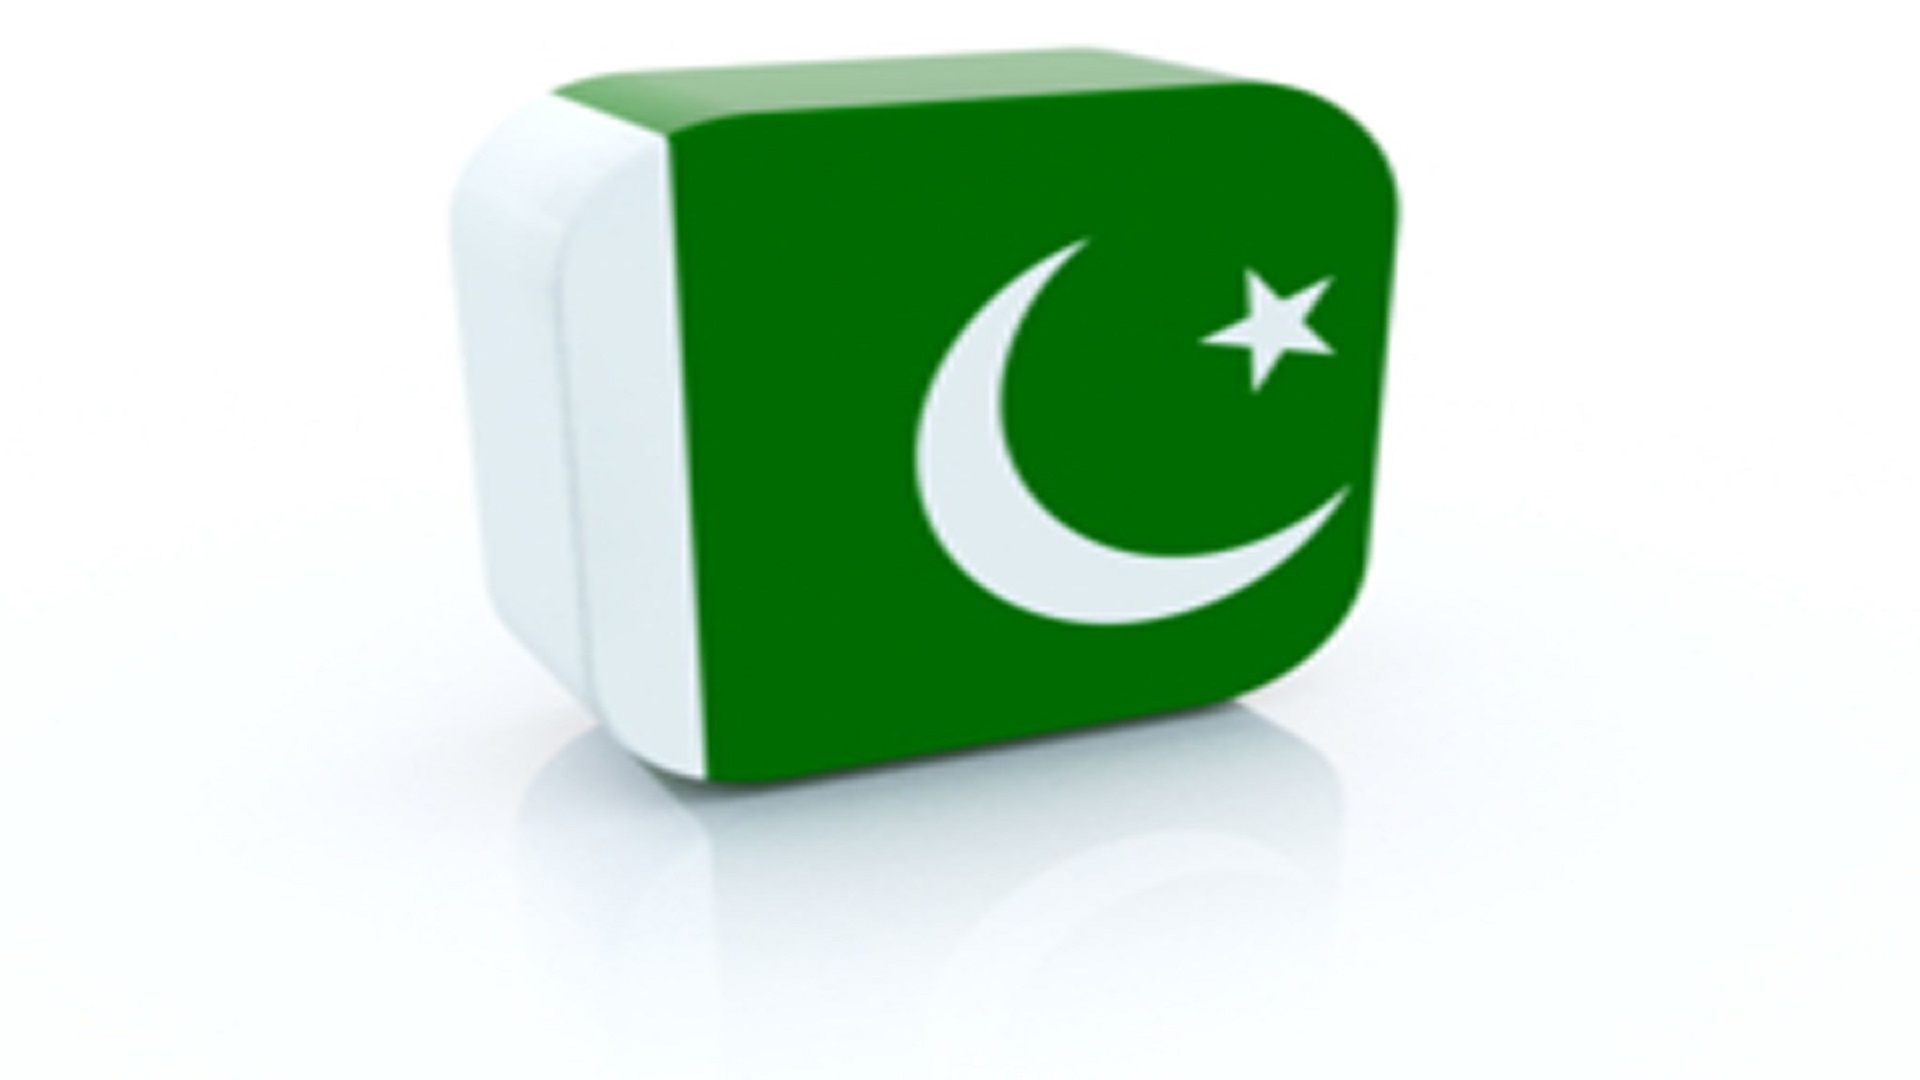 pakistani-3d-flag-wallpapers-hd-free-for-you